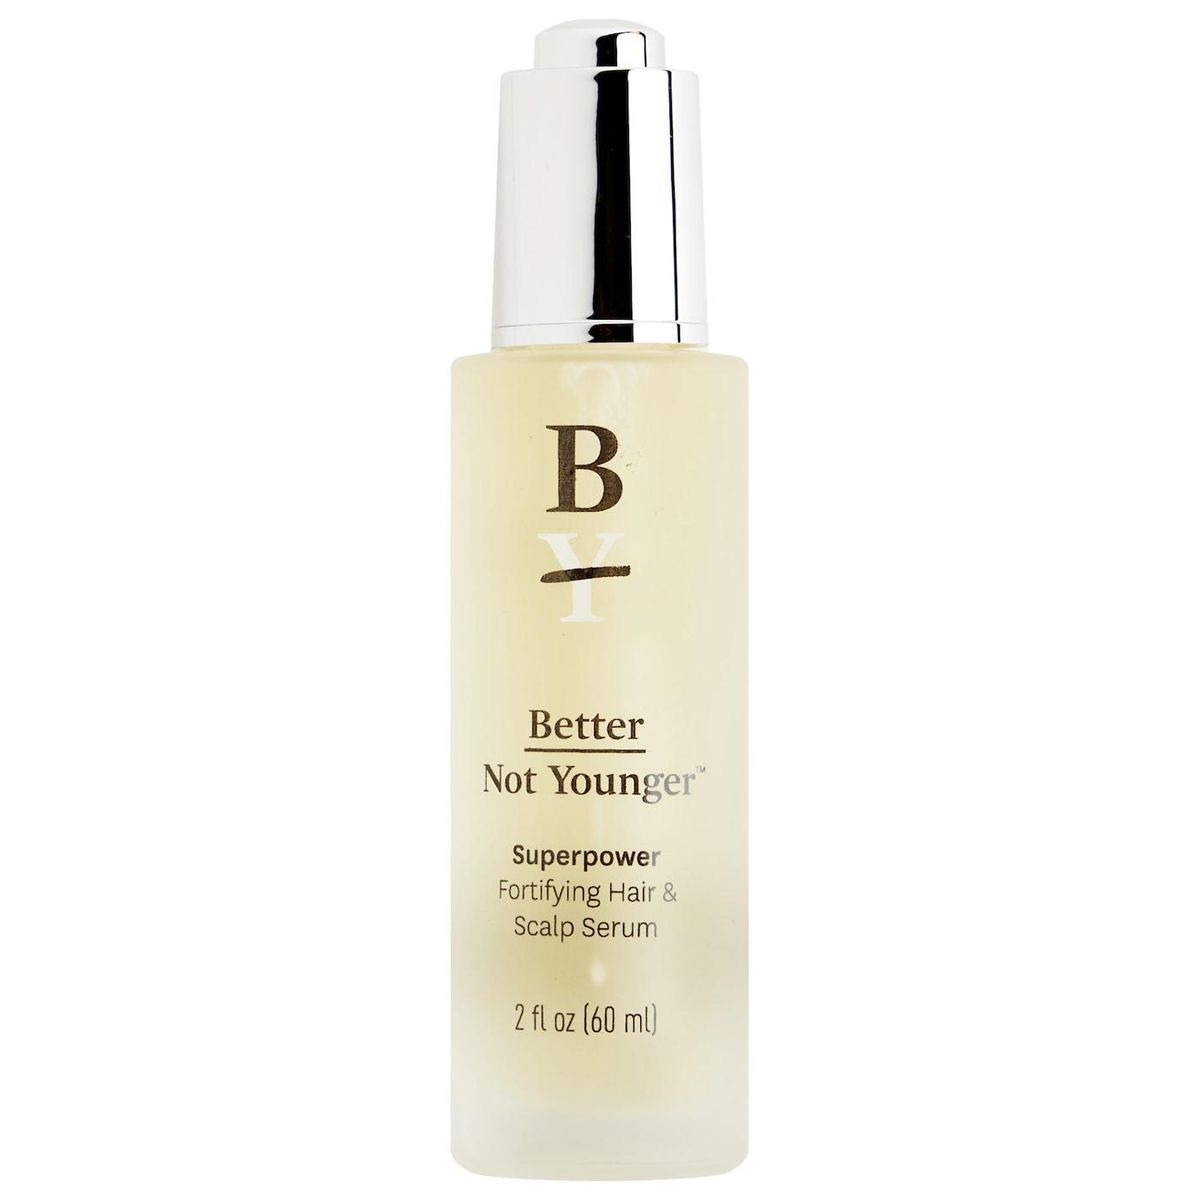 better not younger superpower fortifying hair and scalp serum